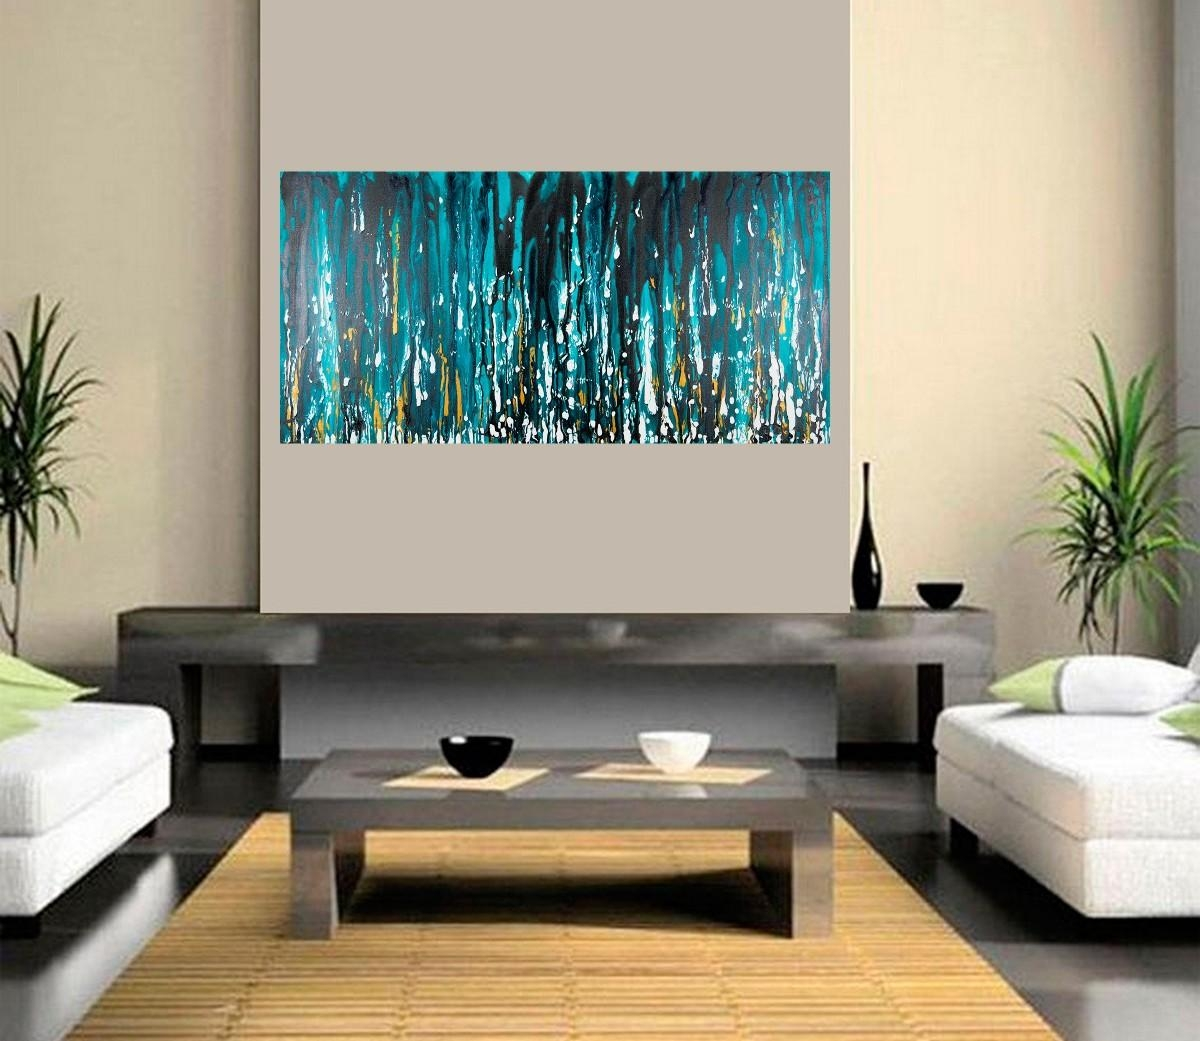 """Meteor Showerqiqigallery 48""""x24"""" Stretched Canvas Original Pertaining To Turquoise And Black Wall Art (View 17 of 20)"""